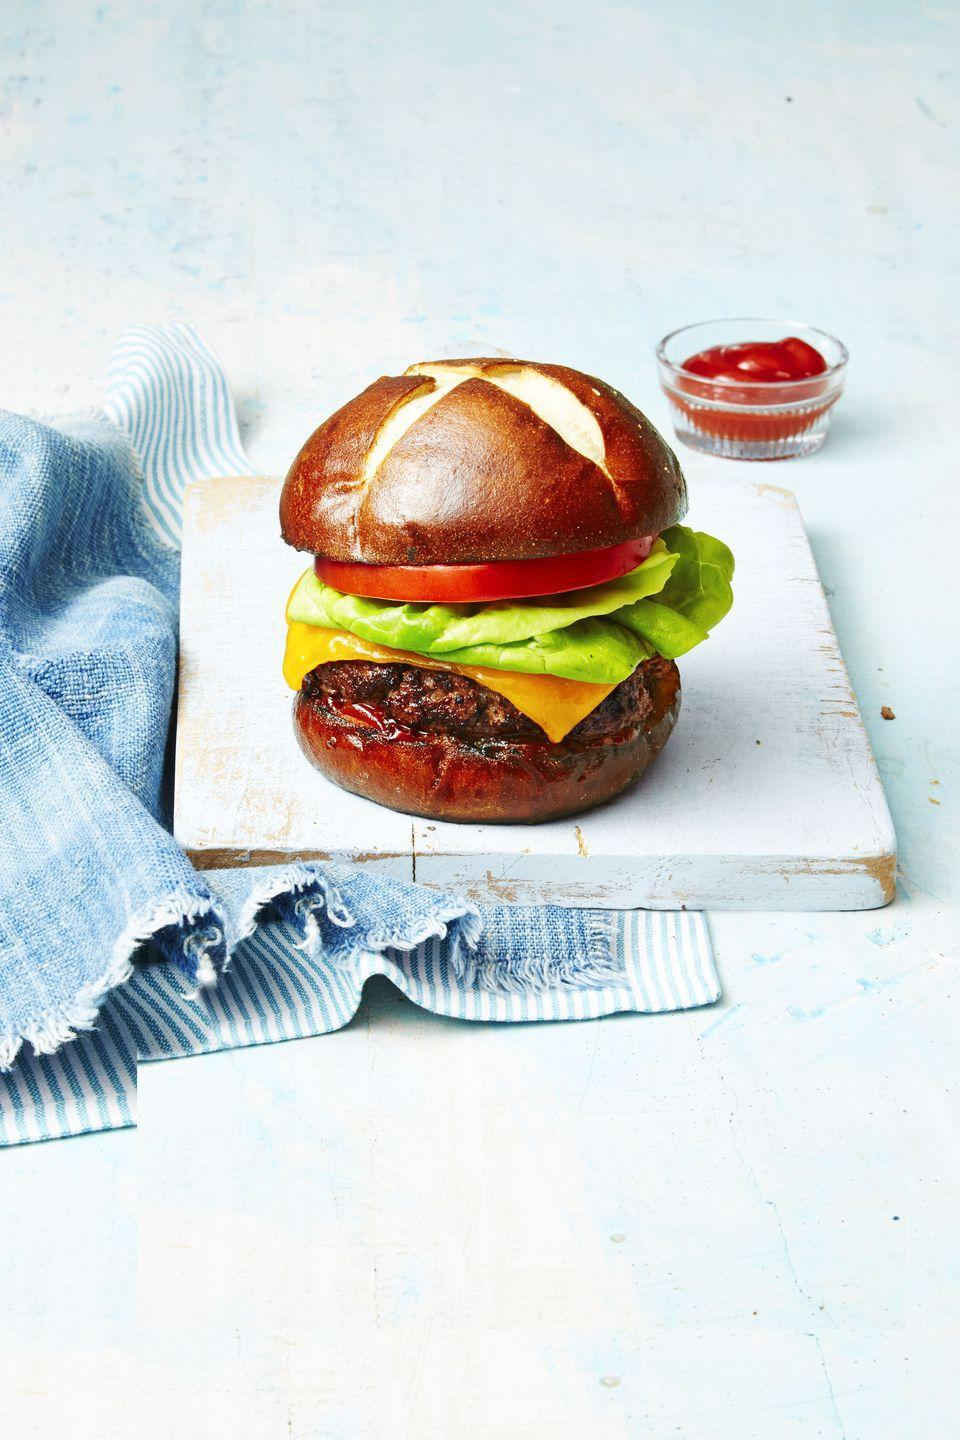 "<p> Horseradish, mustard, and Worcestershire sauce give this patty a kick, but it's the pretzel bun that takes this recipe over-the-top. </p><p><span class=""redactor-invisible-space""><em><span class=""redactor-invisible-space""><span class=""redactor-invisible-space""><a href=""https://www.goodhousekeeping.com/food-recipes/a38754/deviled-burger-recipe/"" rel=""nofollow noopener"" target=""_blank"" data-ylk=""slk:Get the recipe for Deviled Burger »"" class=""link rapid-noclick-resp"">Get the recipe for Deviled Burger »</a></span></span></em></span></p><p><span class=""redactor-invisible-space""><span class=""redactor-invisible-space""><span class=""redactor-invisible-space""><strong>RELATED</strong>: <a href=""https://www.goodhousekeeping.com/food-recipes/g1553/burger-recipes/"" rel=""nofollow noopener"" target=""_blank"" data-ylk=""slk:48 Unique, Homemade Burger Recipes That Will Satisfy Your Cravings"" class=""link rapid-noclick-resp"">48 Unique, Homemade Burger Recipes That Will Satisfy Your Cravings</a><a href=""https://www.goodhousekeeping.com/food-recipes/a38754/deviled-burger-recipe/"" rel=""nofollow noopener"" target=""_blank"" data-ylk=""slk:"" class=""link rapid-noclick-resp""><br></a></span></span></span></p>"